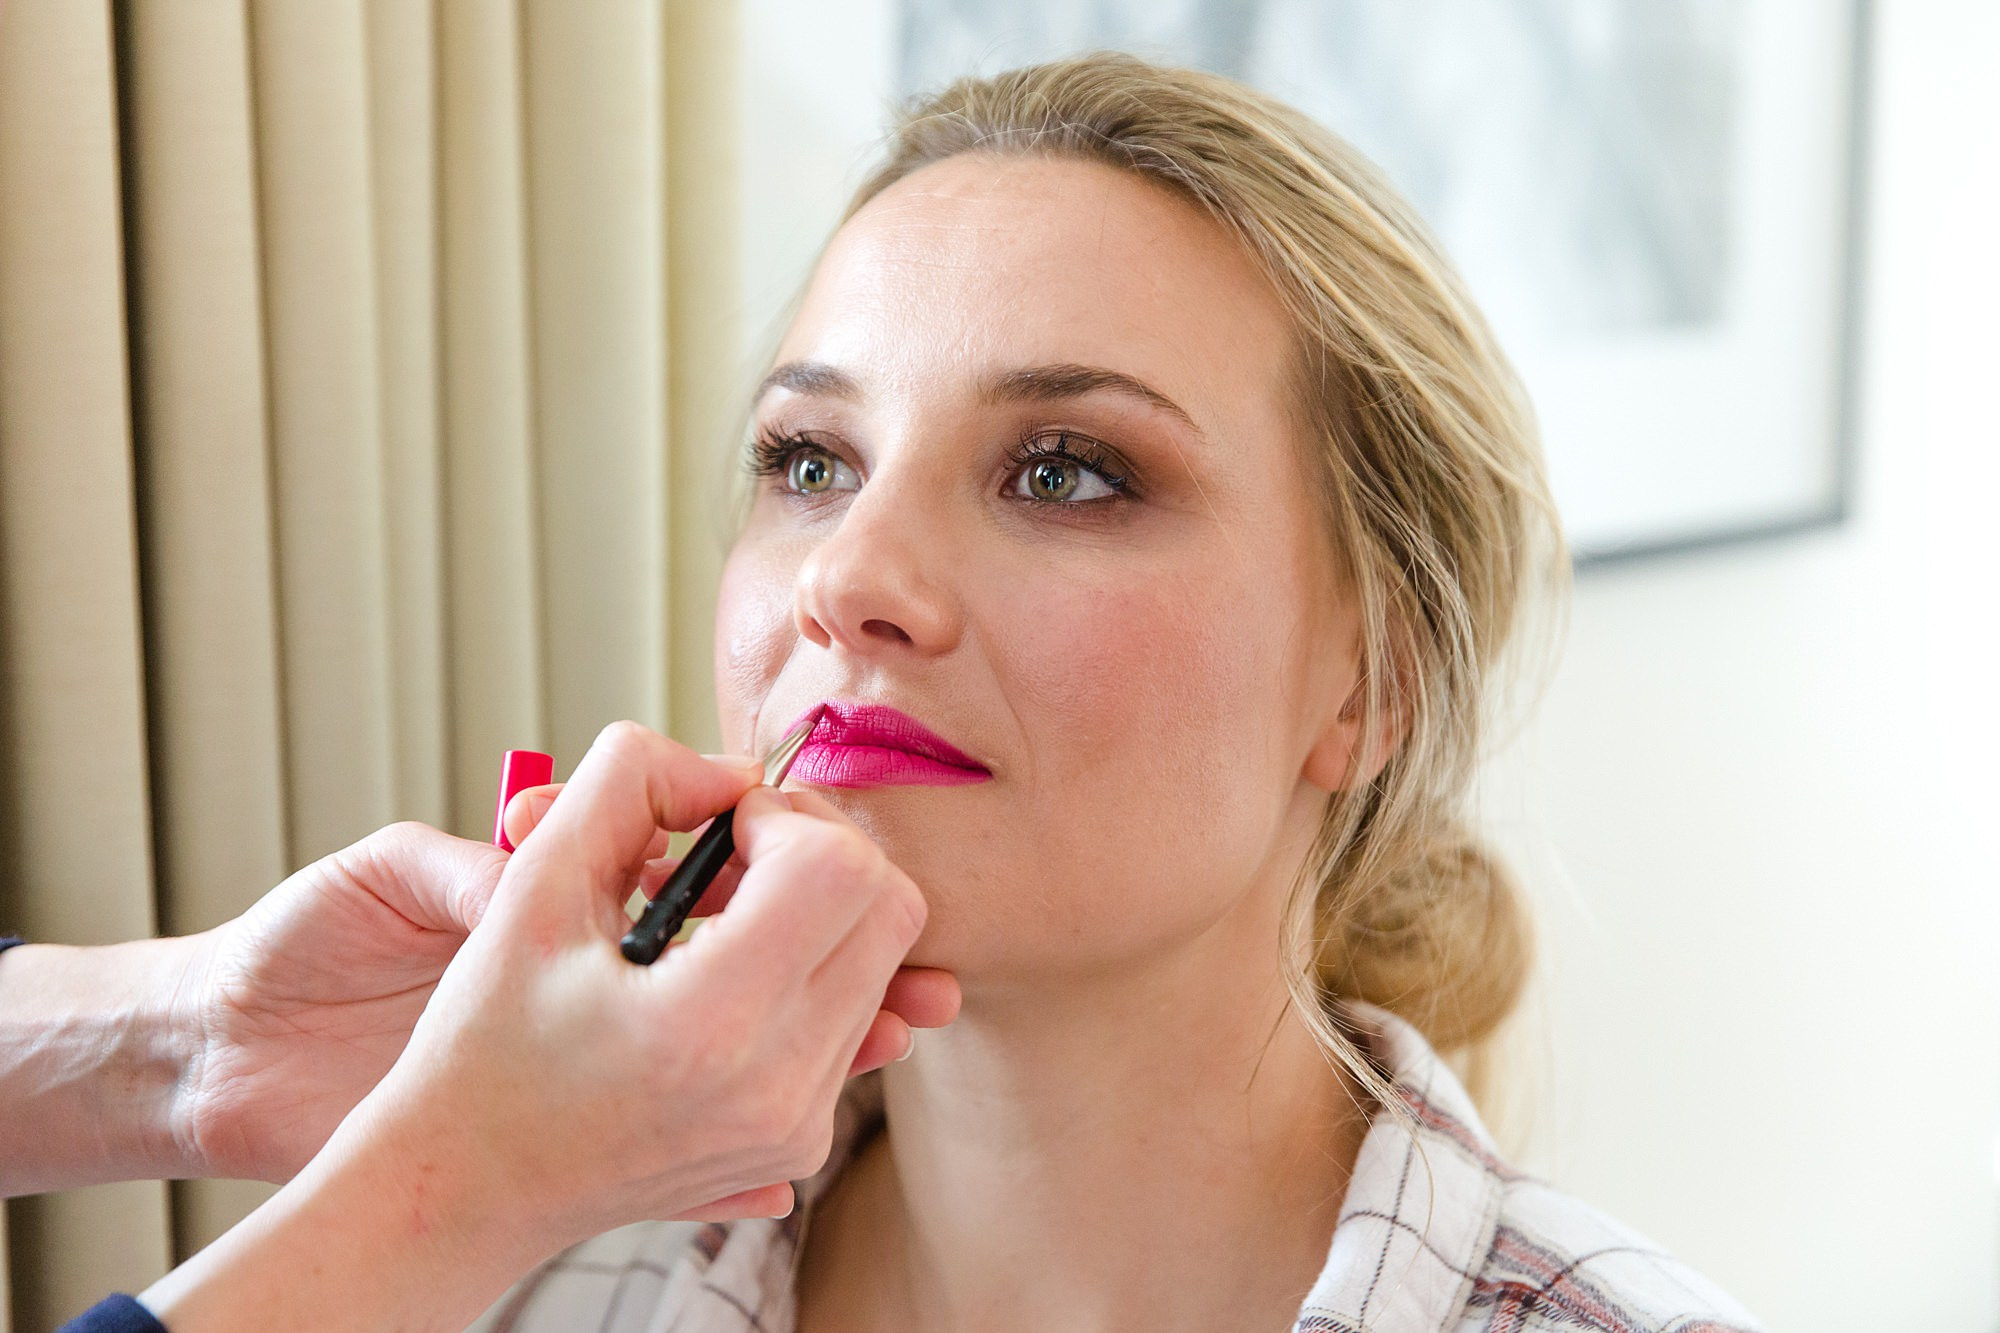 bride has bright pink lipstick applied